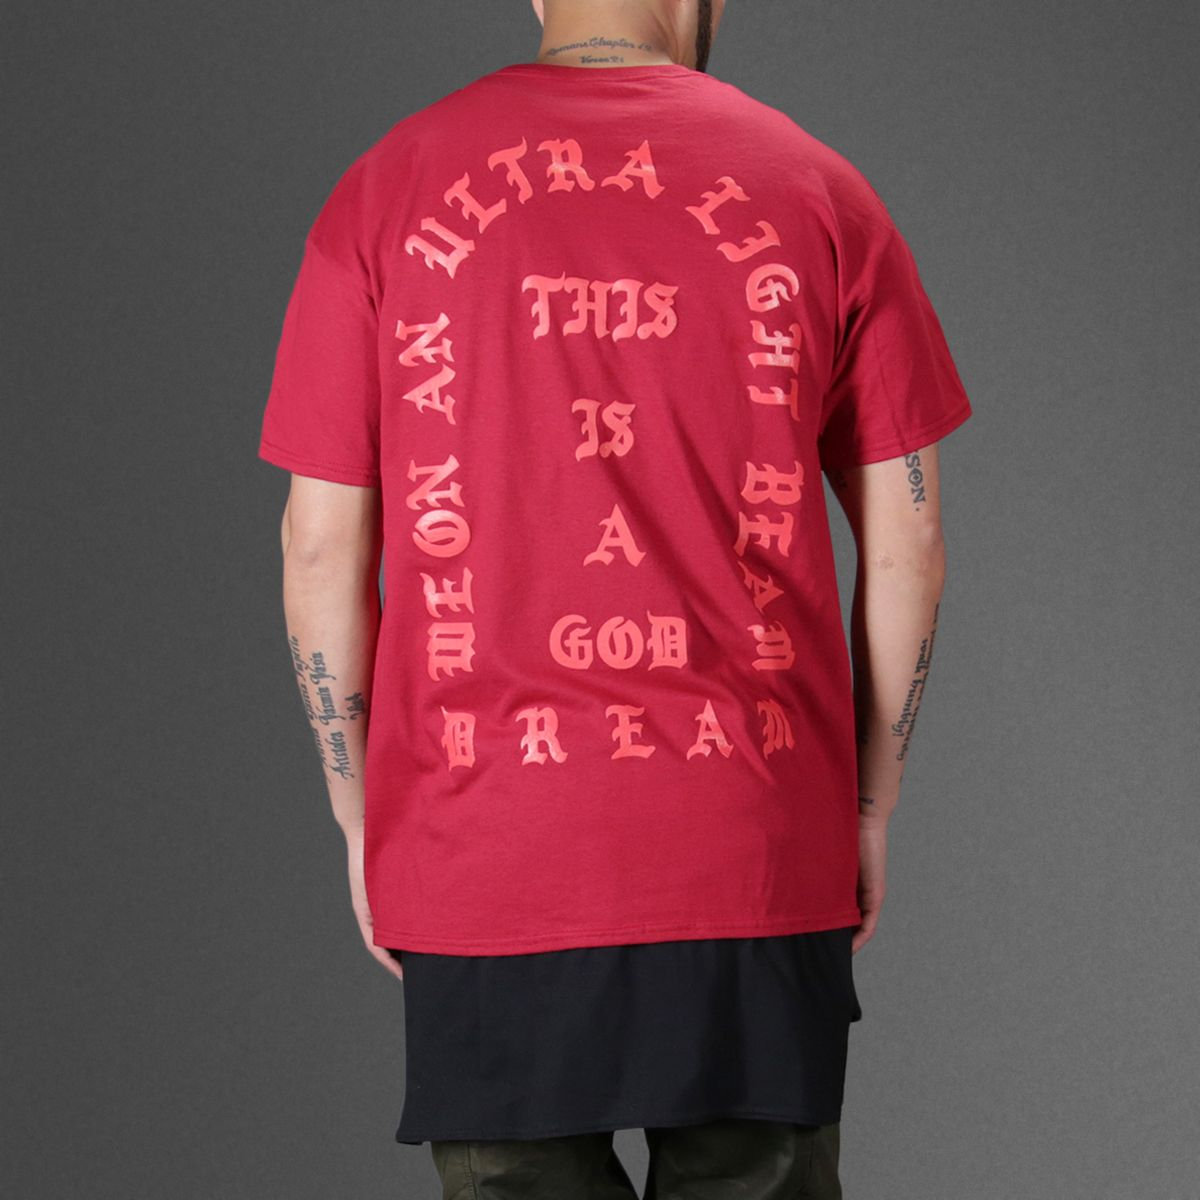 Kanye West I Feel Like Pablo Red T Shirt Wehustle Menswear Womenswear Hats Mixtapes More Red Tshirt Red Tee T Shirt